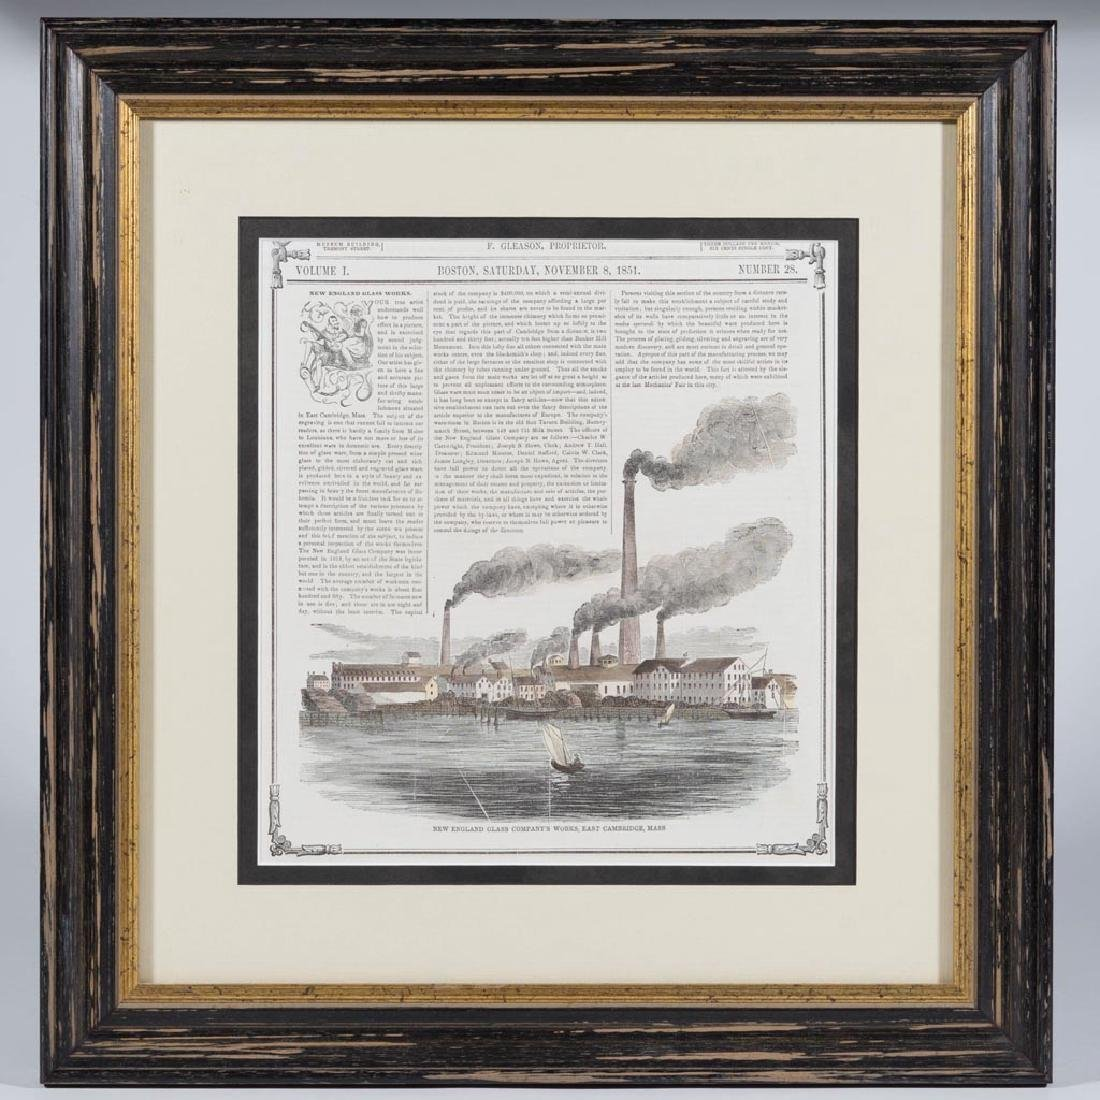 NEW ENGLAND GLASS CO. PERIOD PRINTED ARTICLE